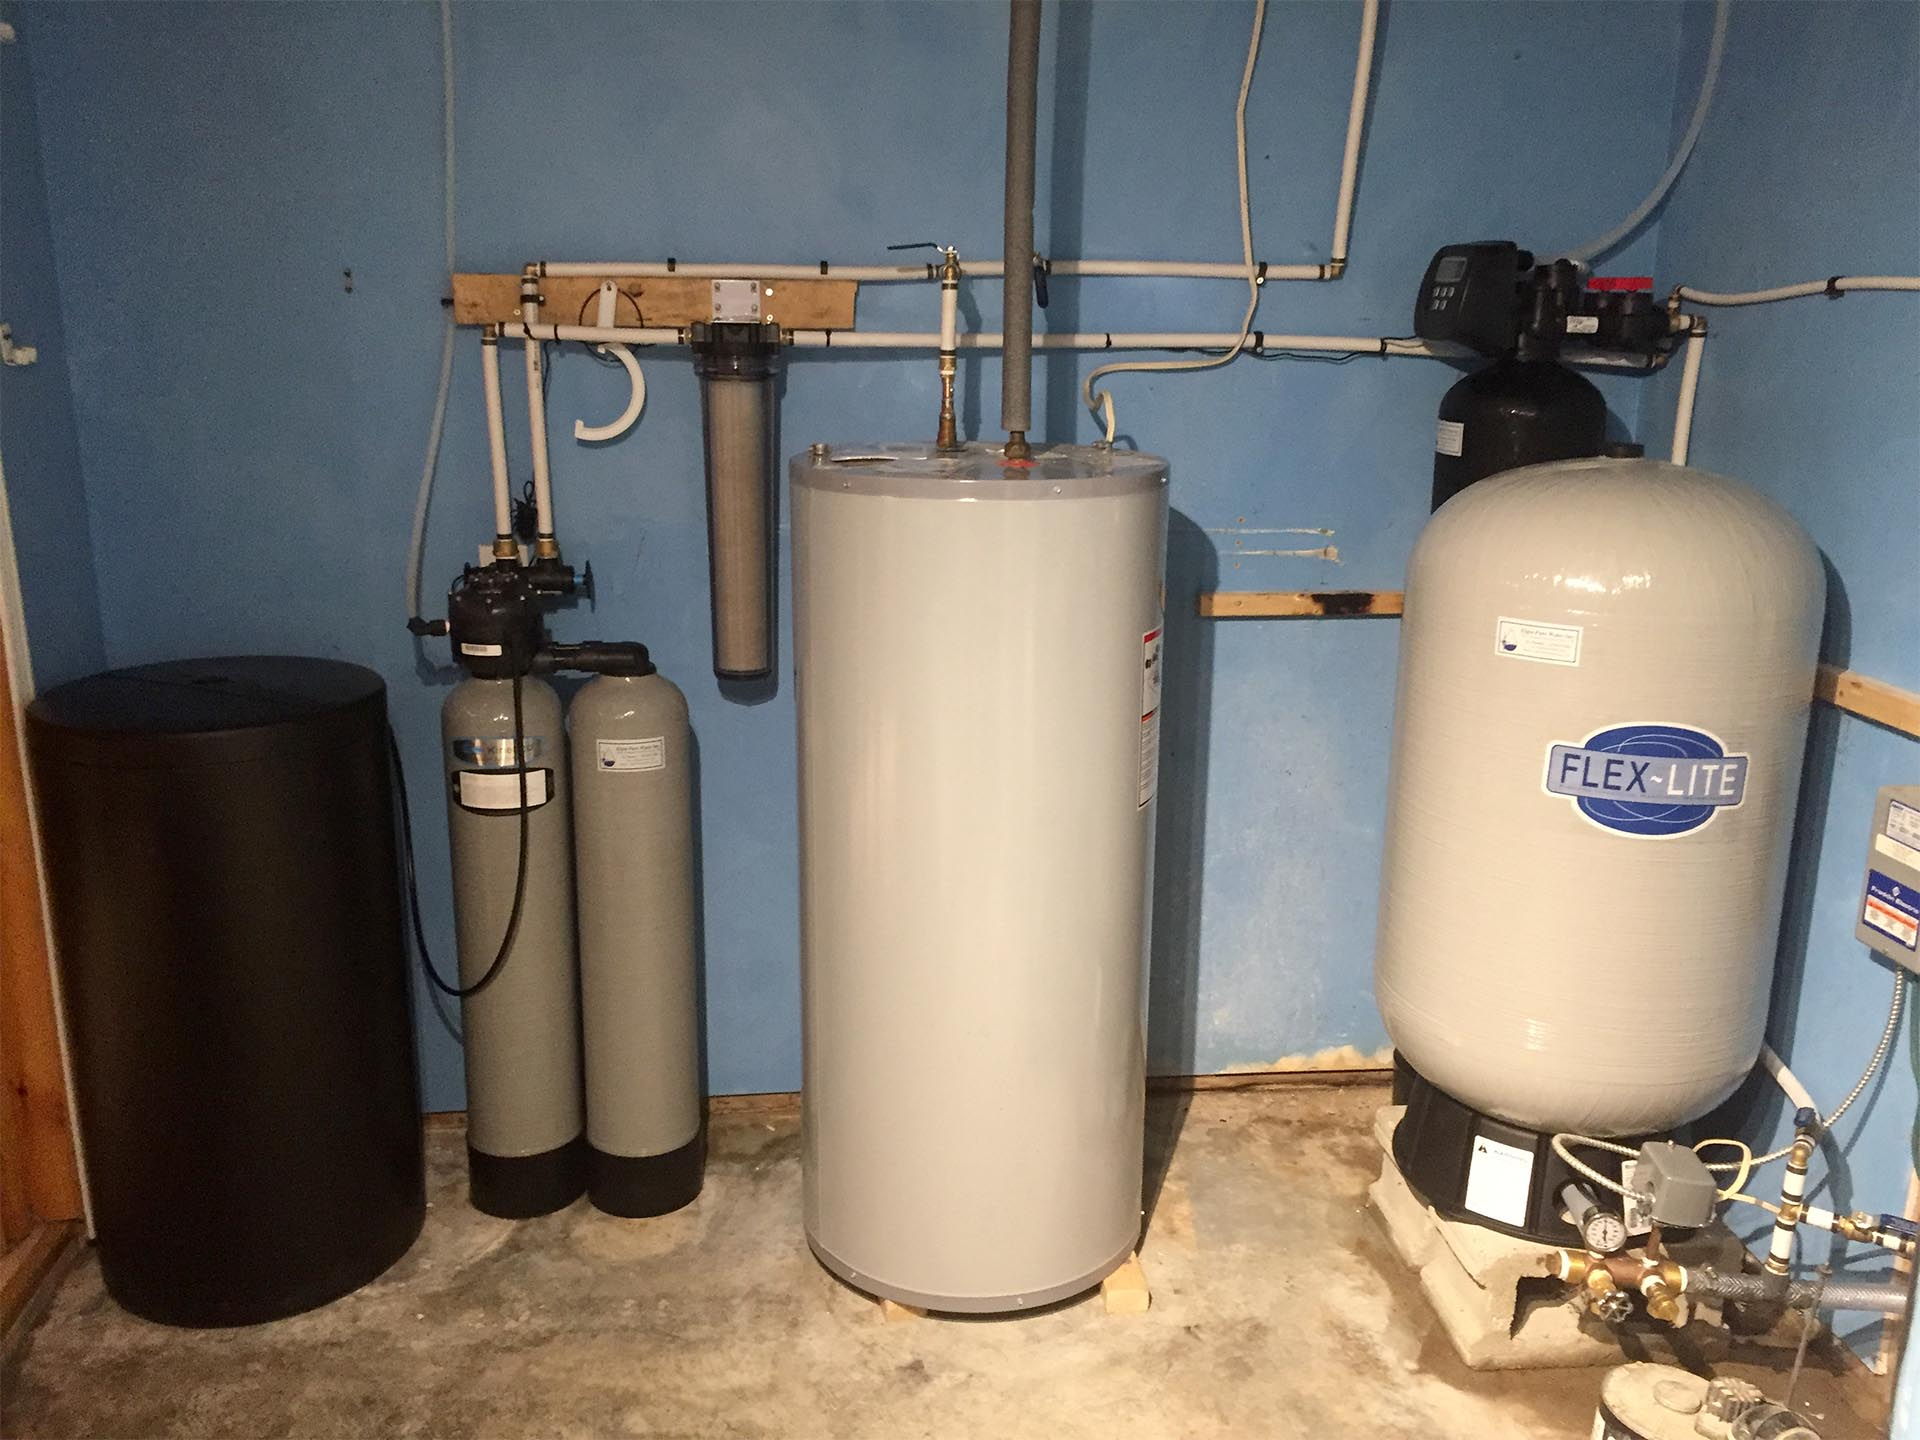 Softener And Water Tank - After